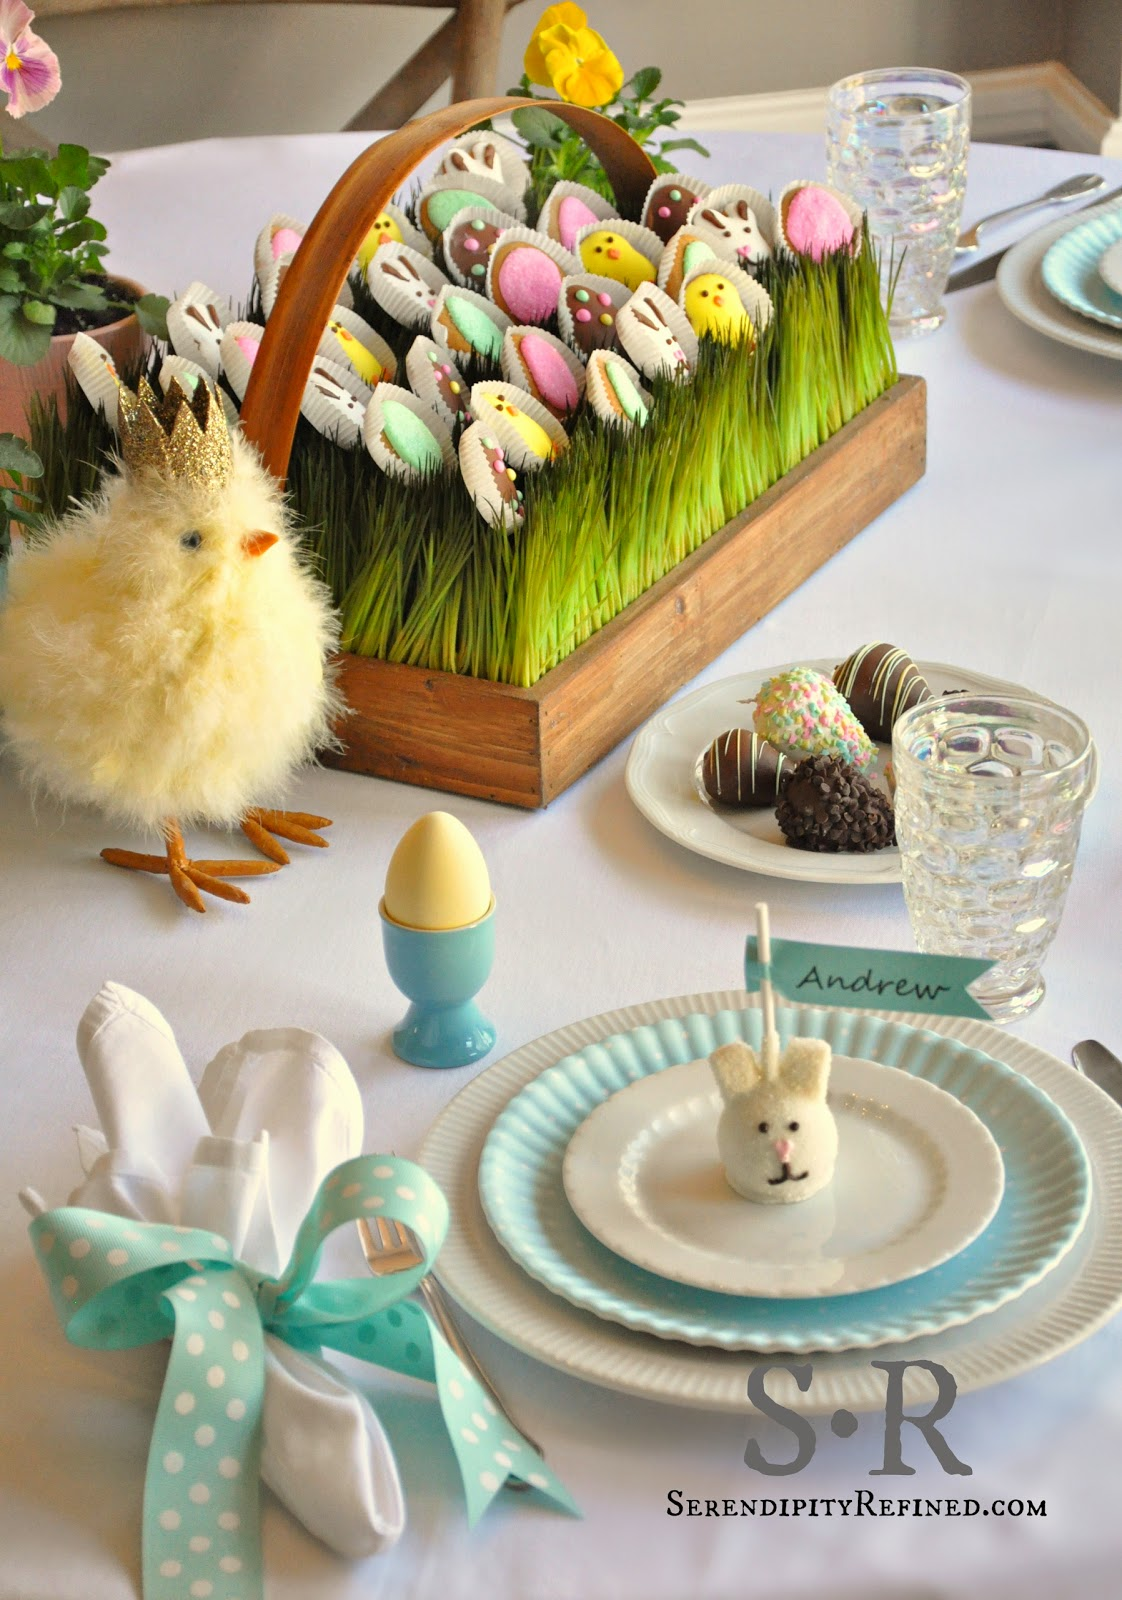 Serendipity refined blog pastel spring edible easter table decorating - Table easter decorations ...